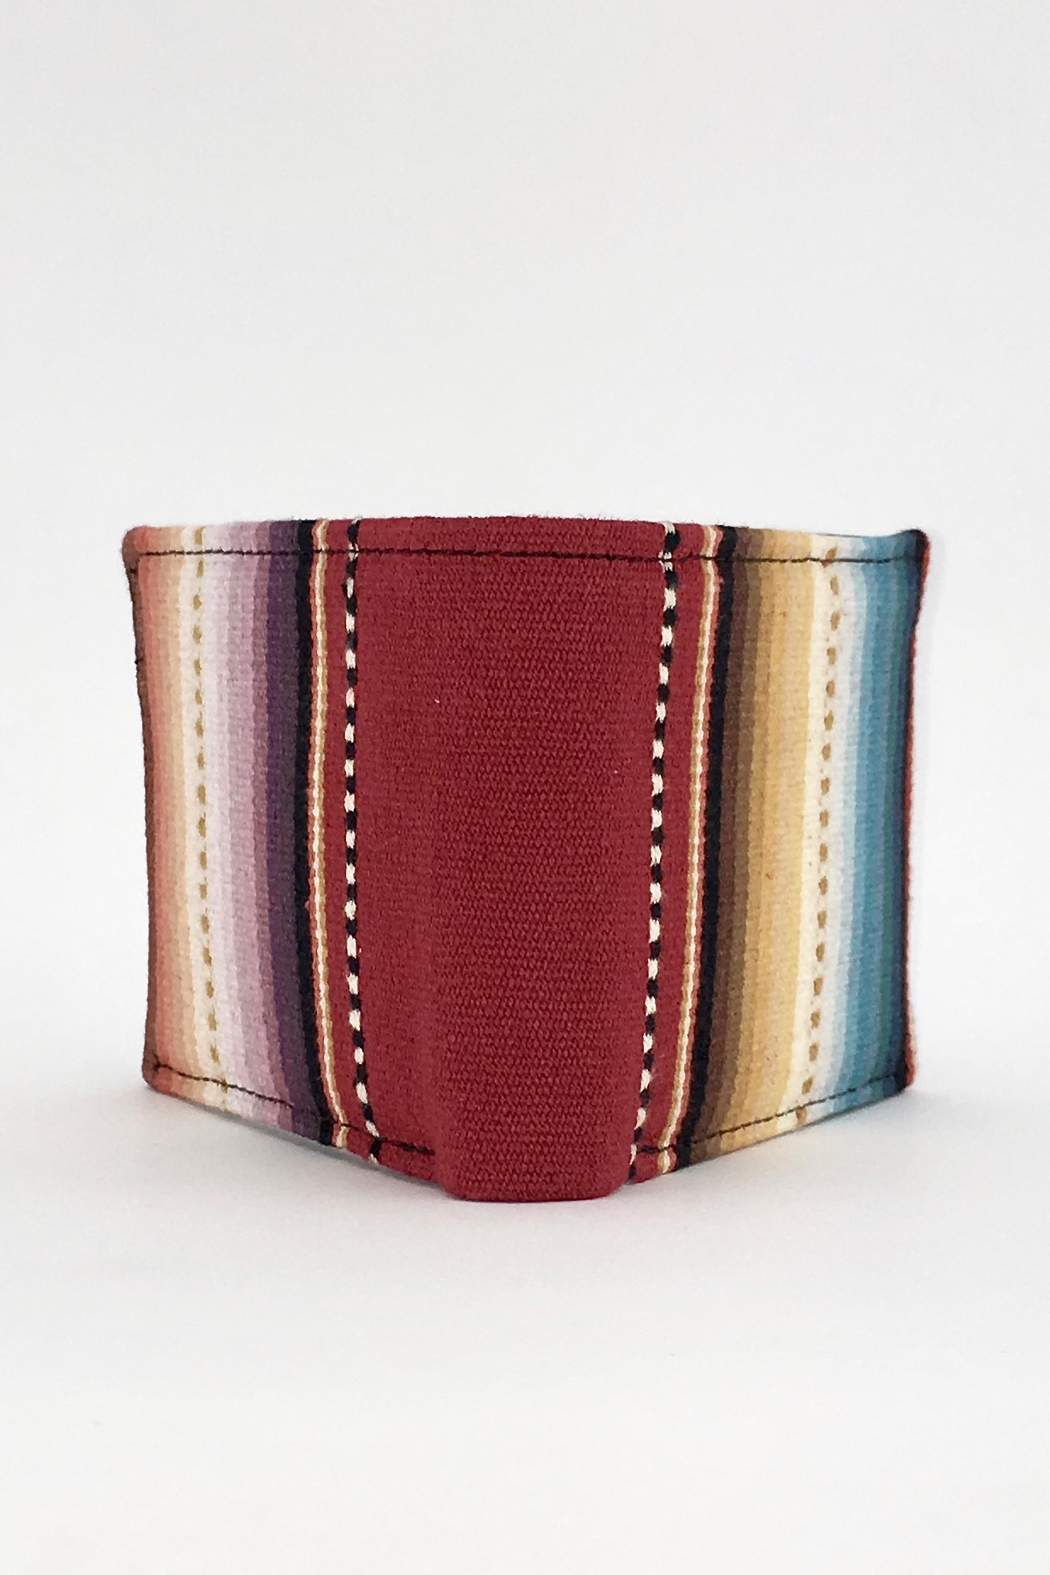 Unbranded Red-Sarape-Woven-Textile Handcrafted Billfold-Wallet - Back Cropped Image